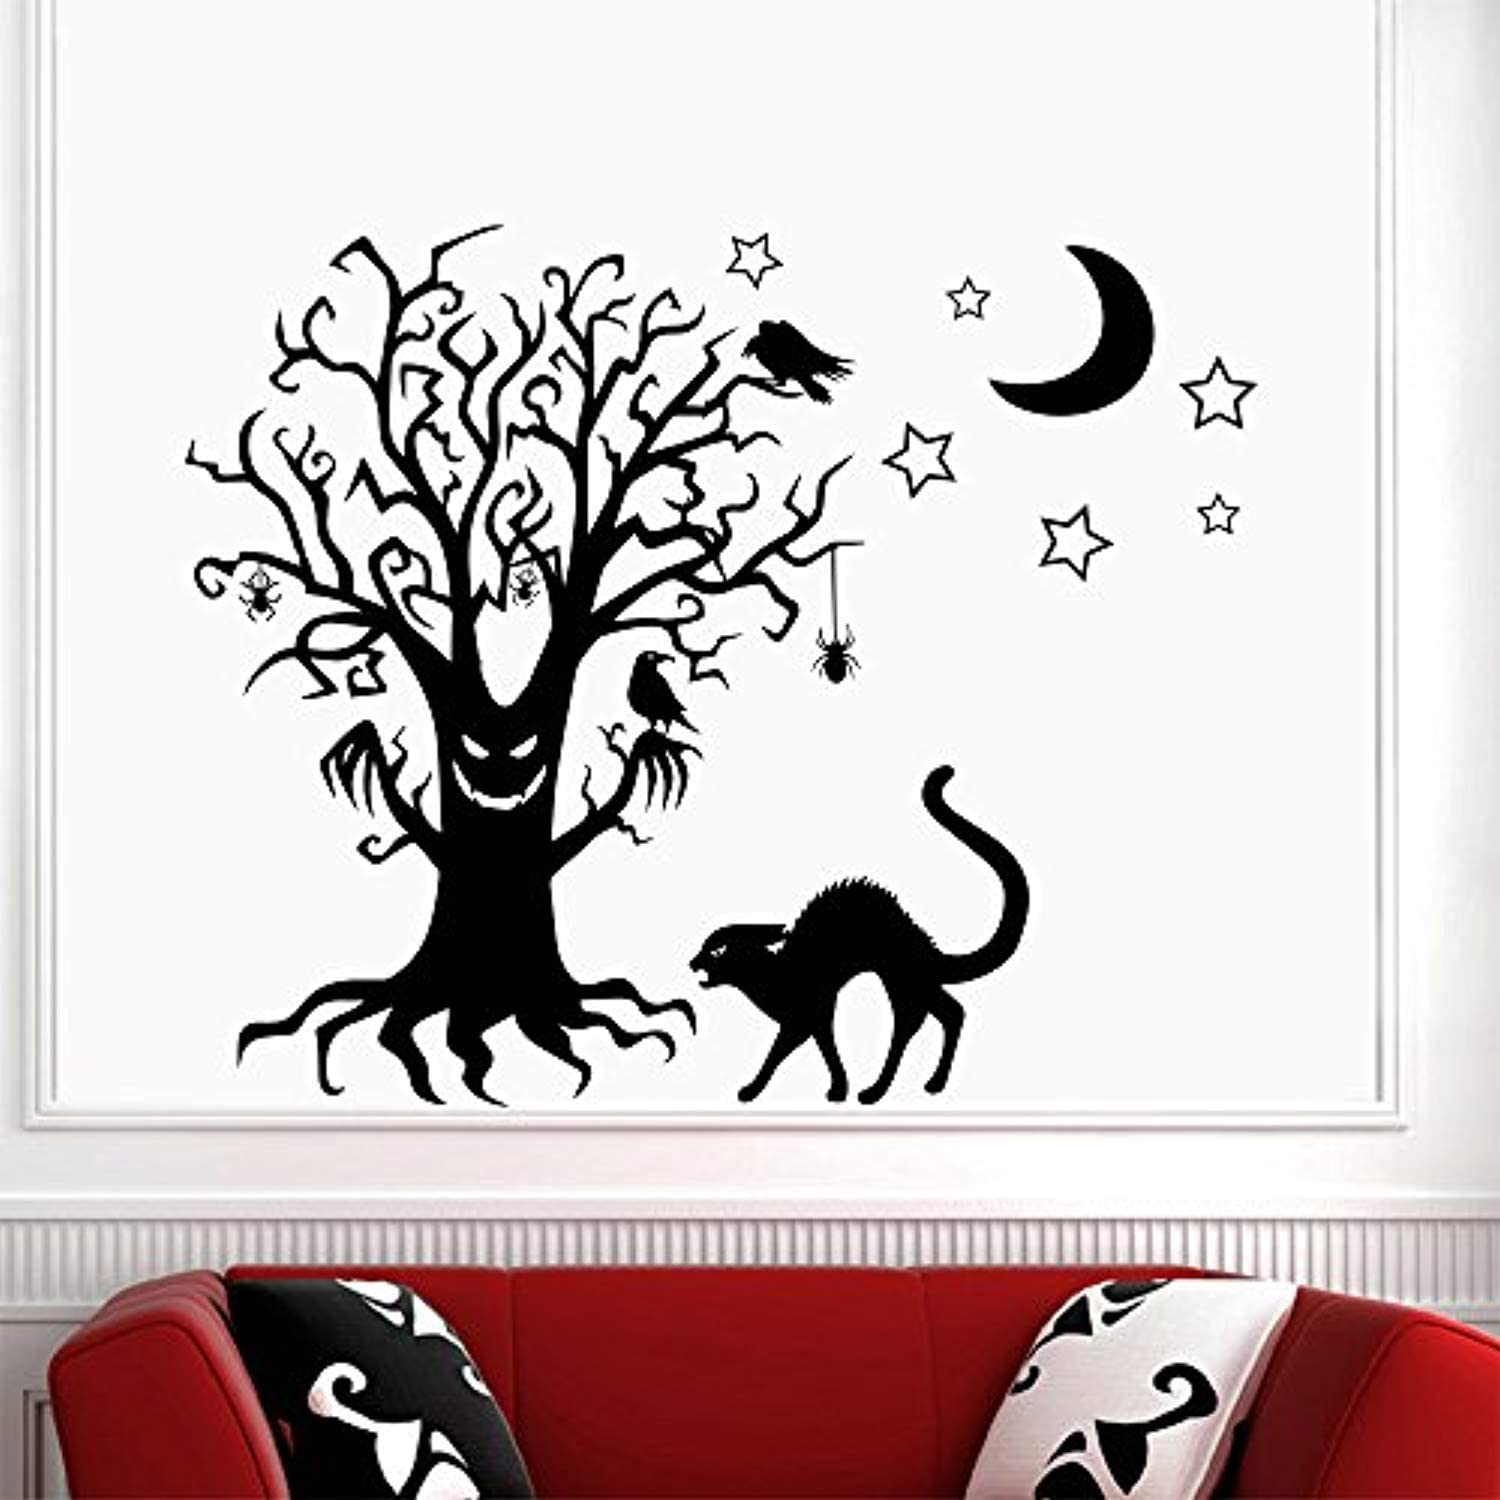 Highest Quality Wall Decal Sticker Cats on the Moon